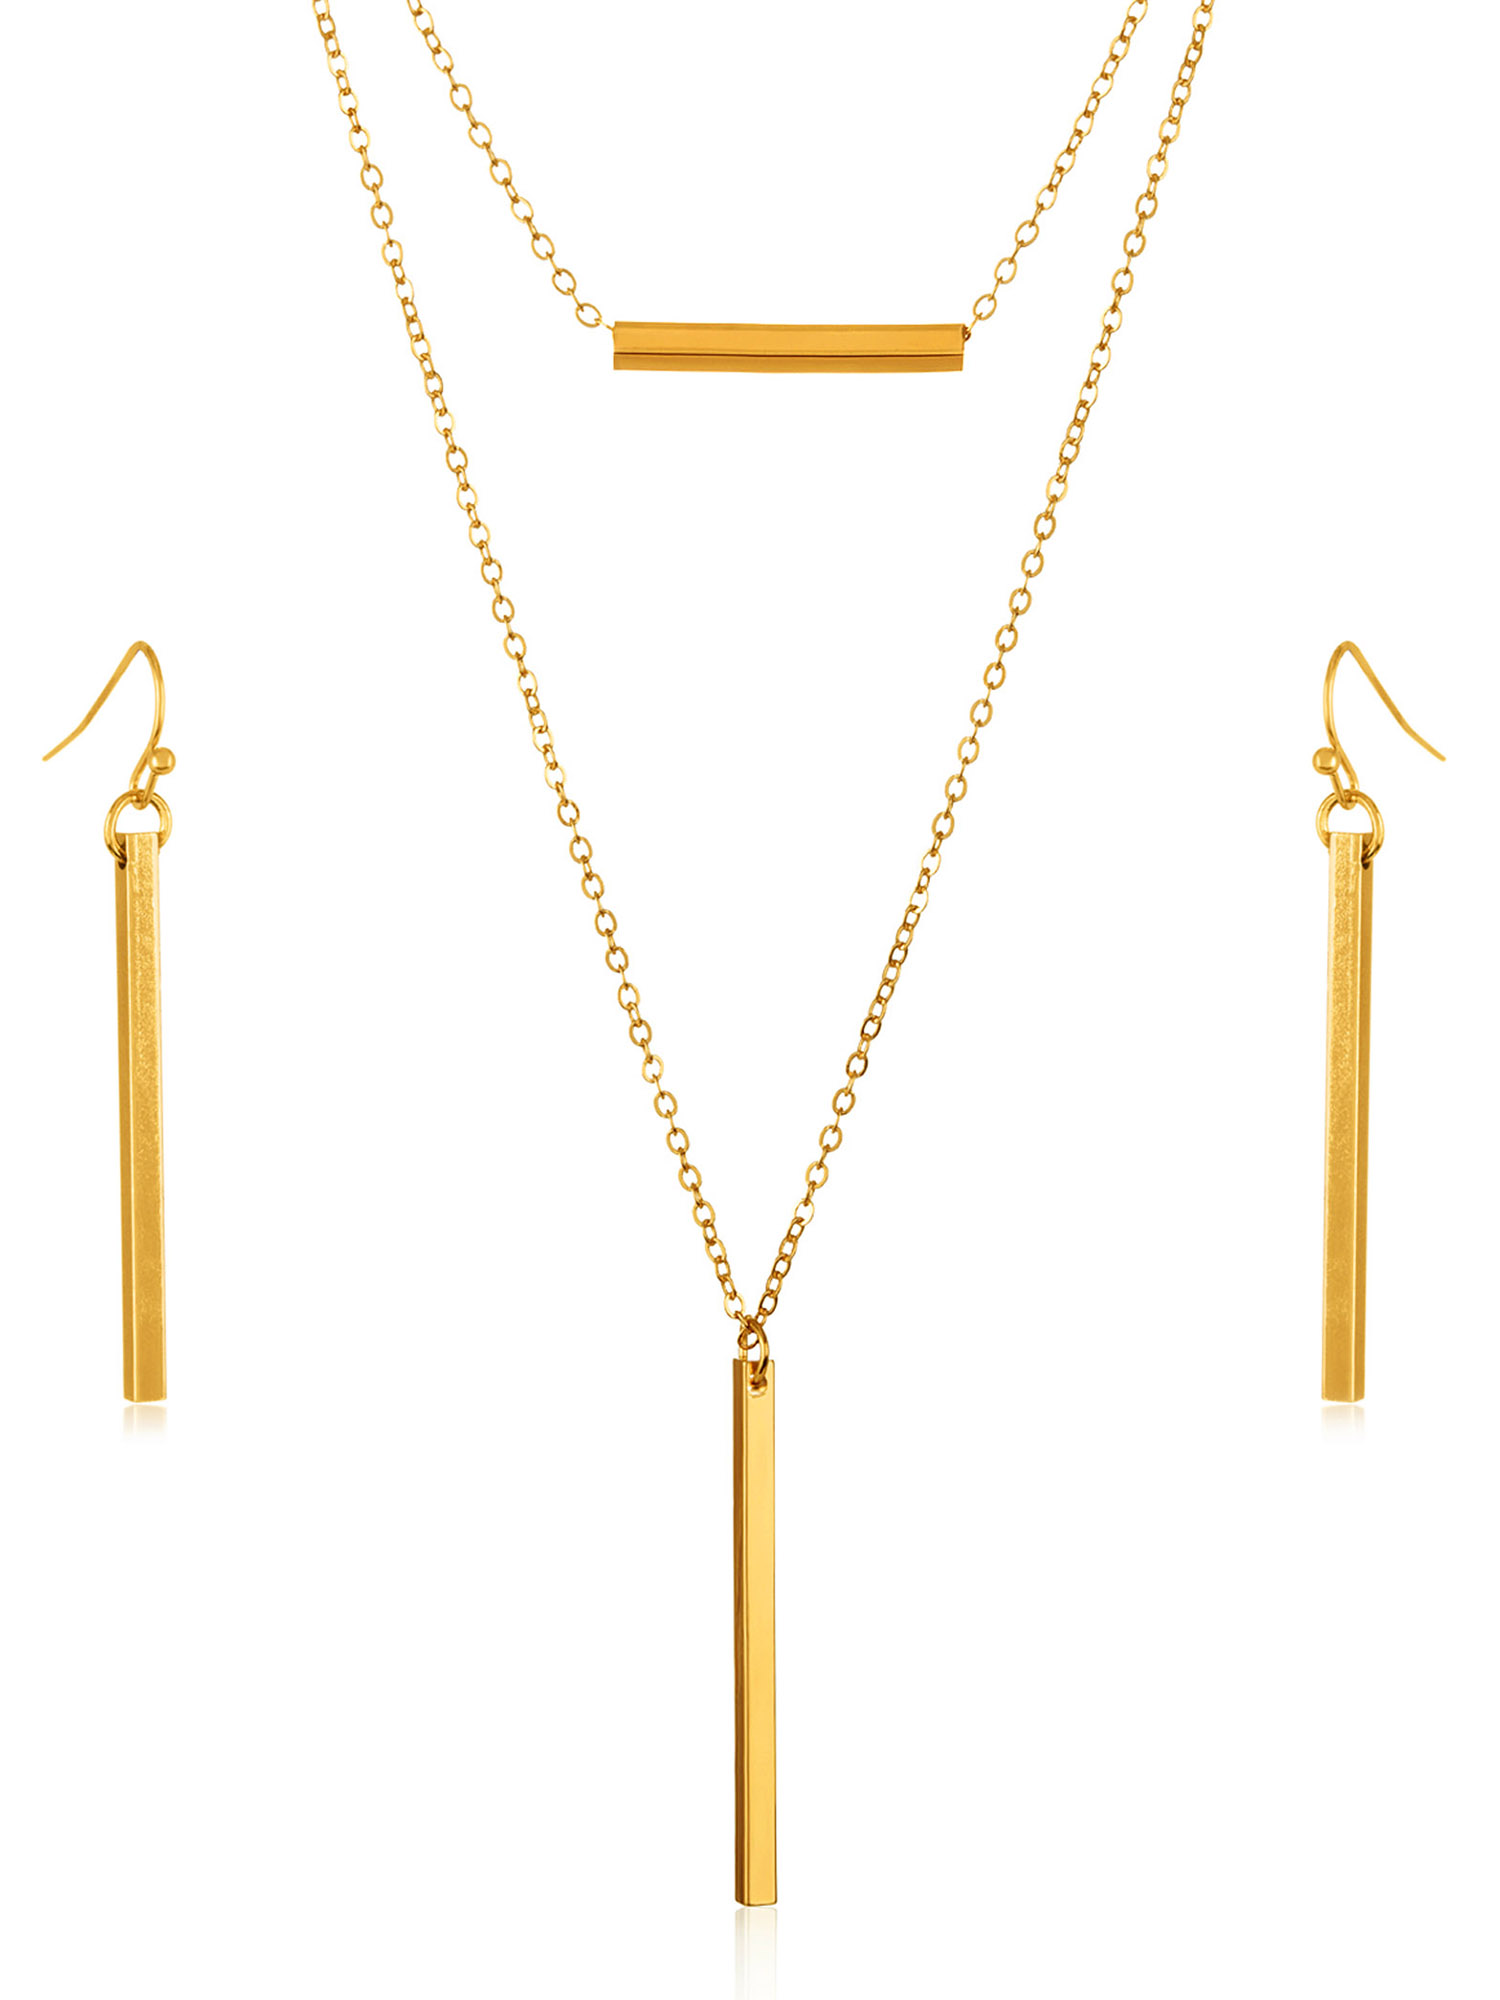 Gold Tone Double Layer Bar Necklace and Earrings Jewelry Set